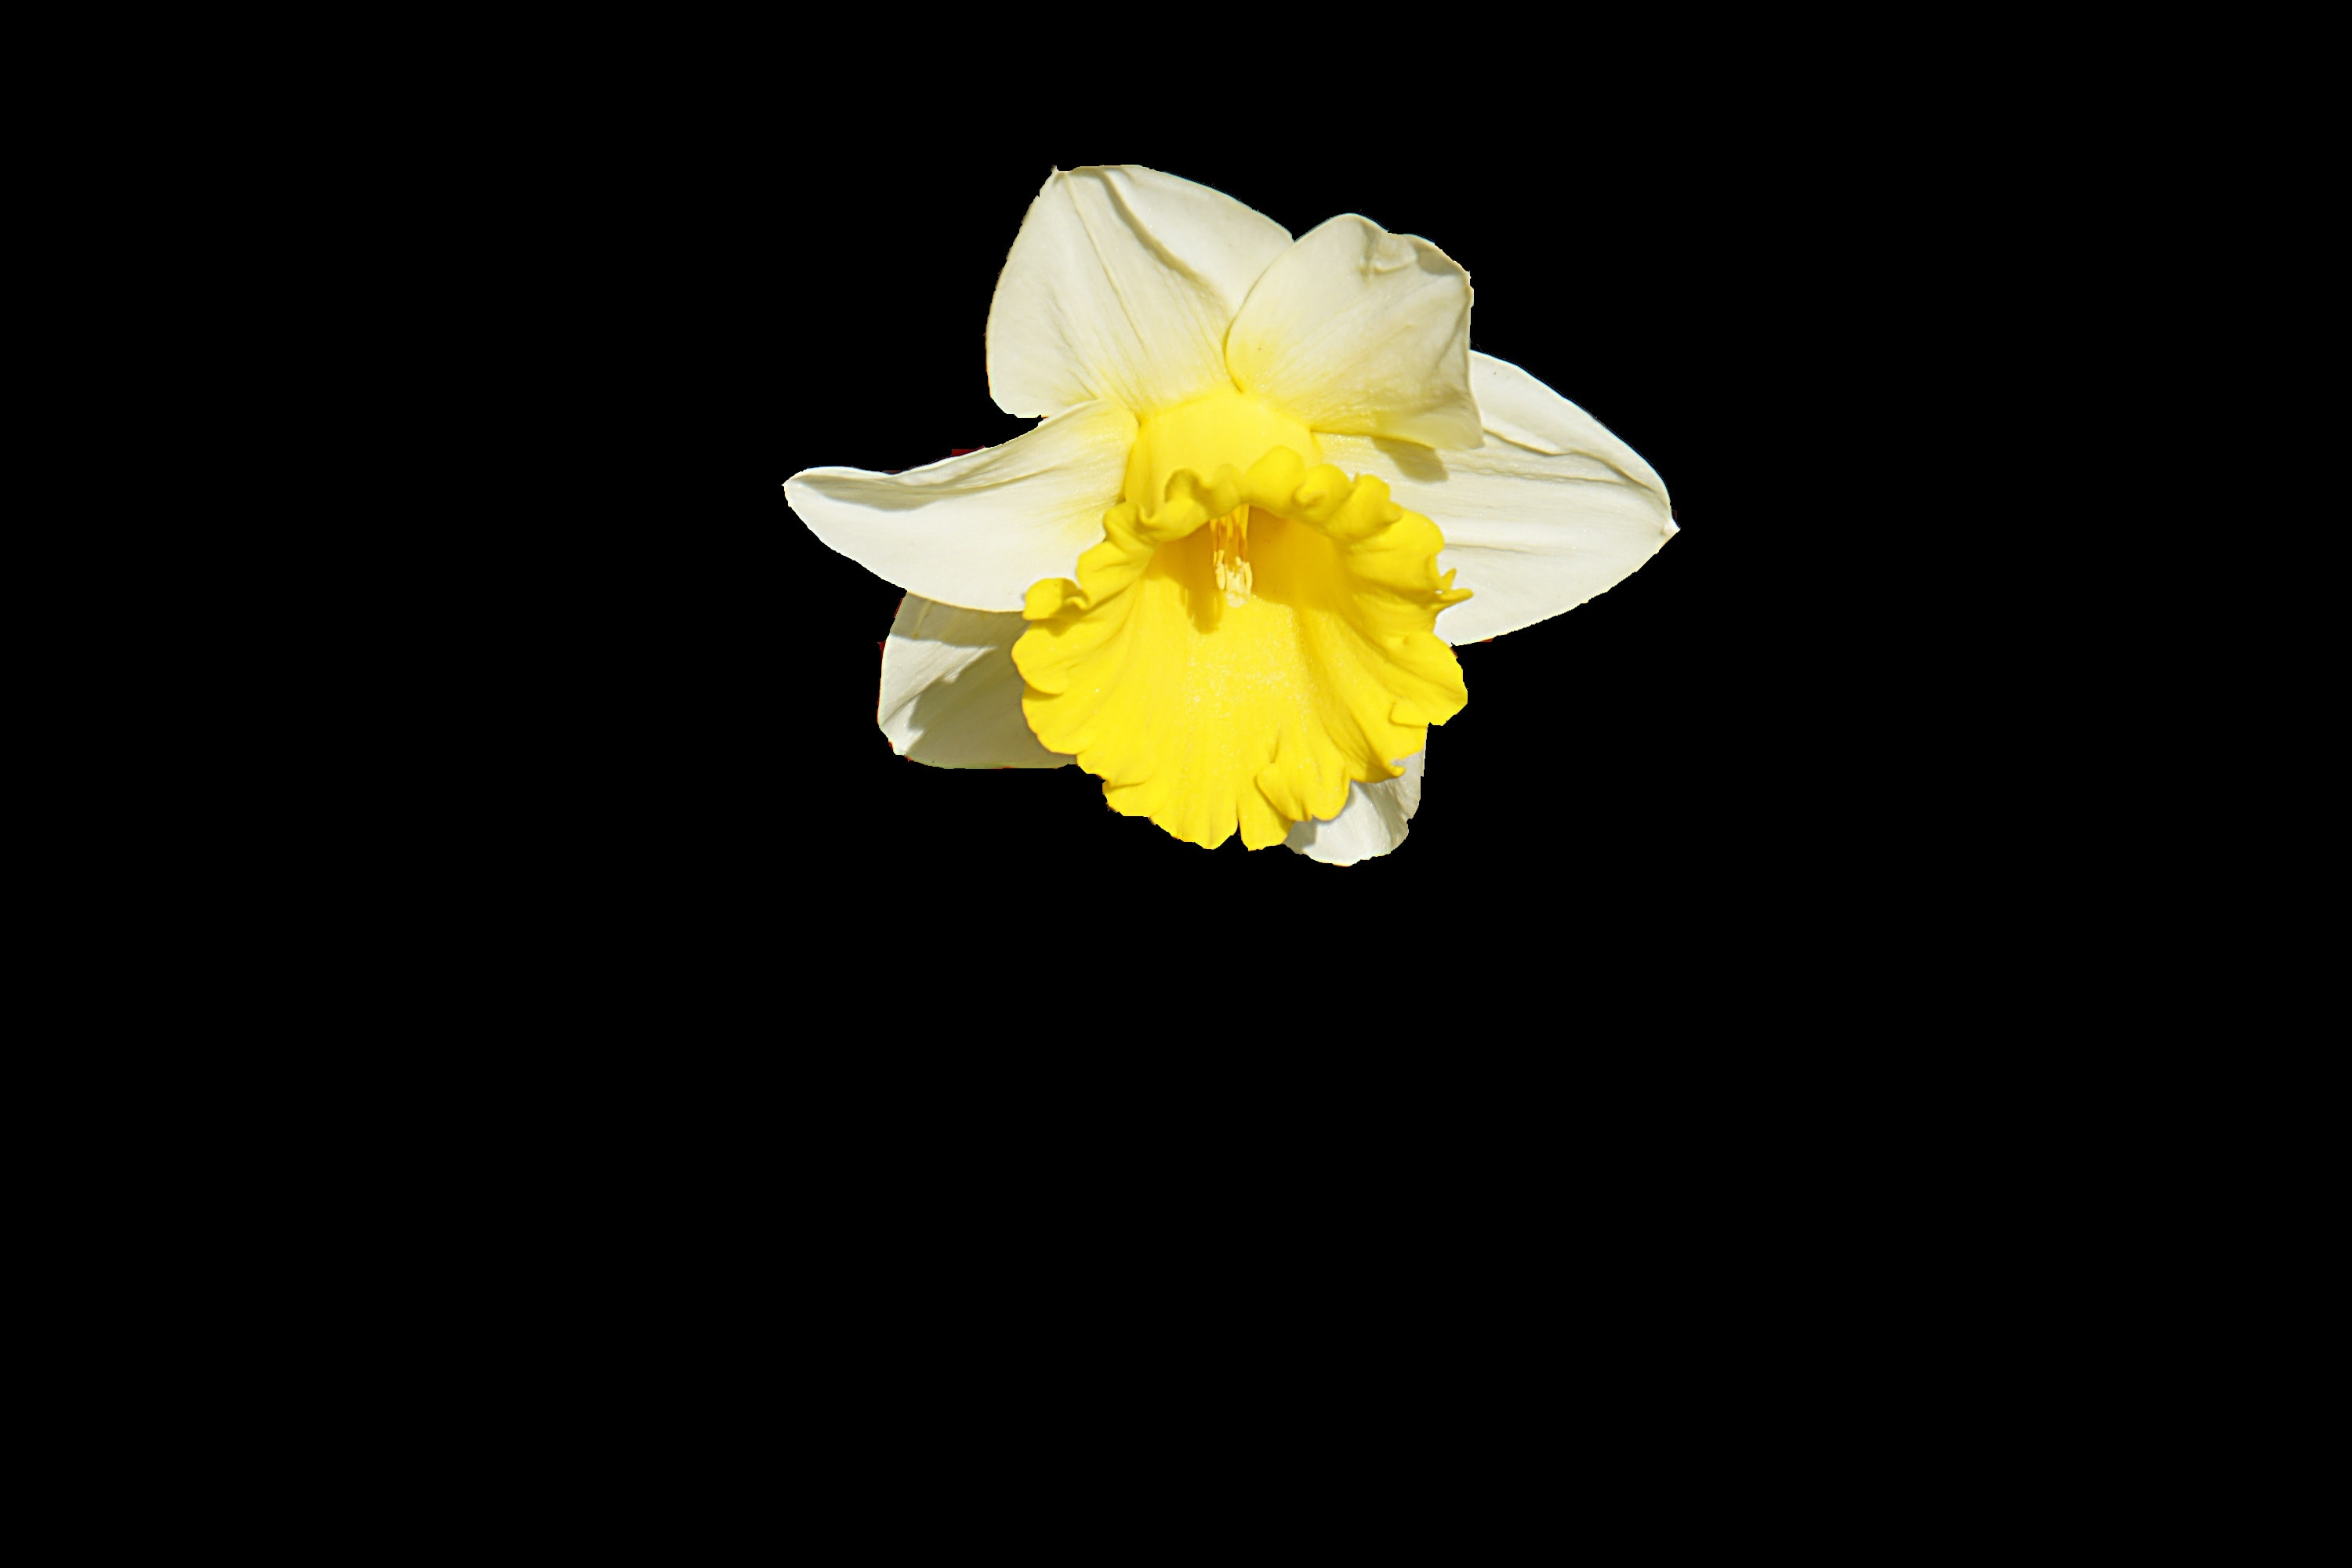 Yellow and white petaled flower photo